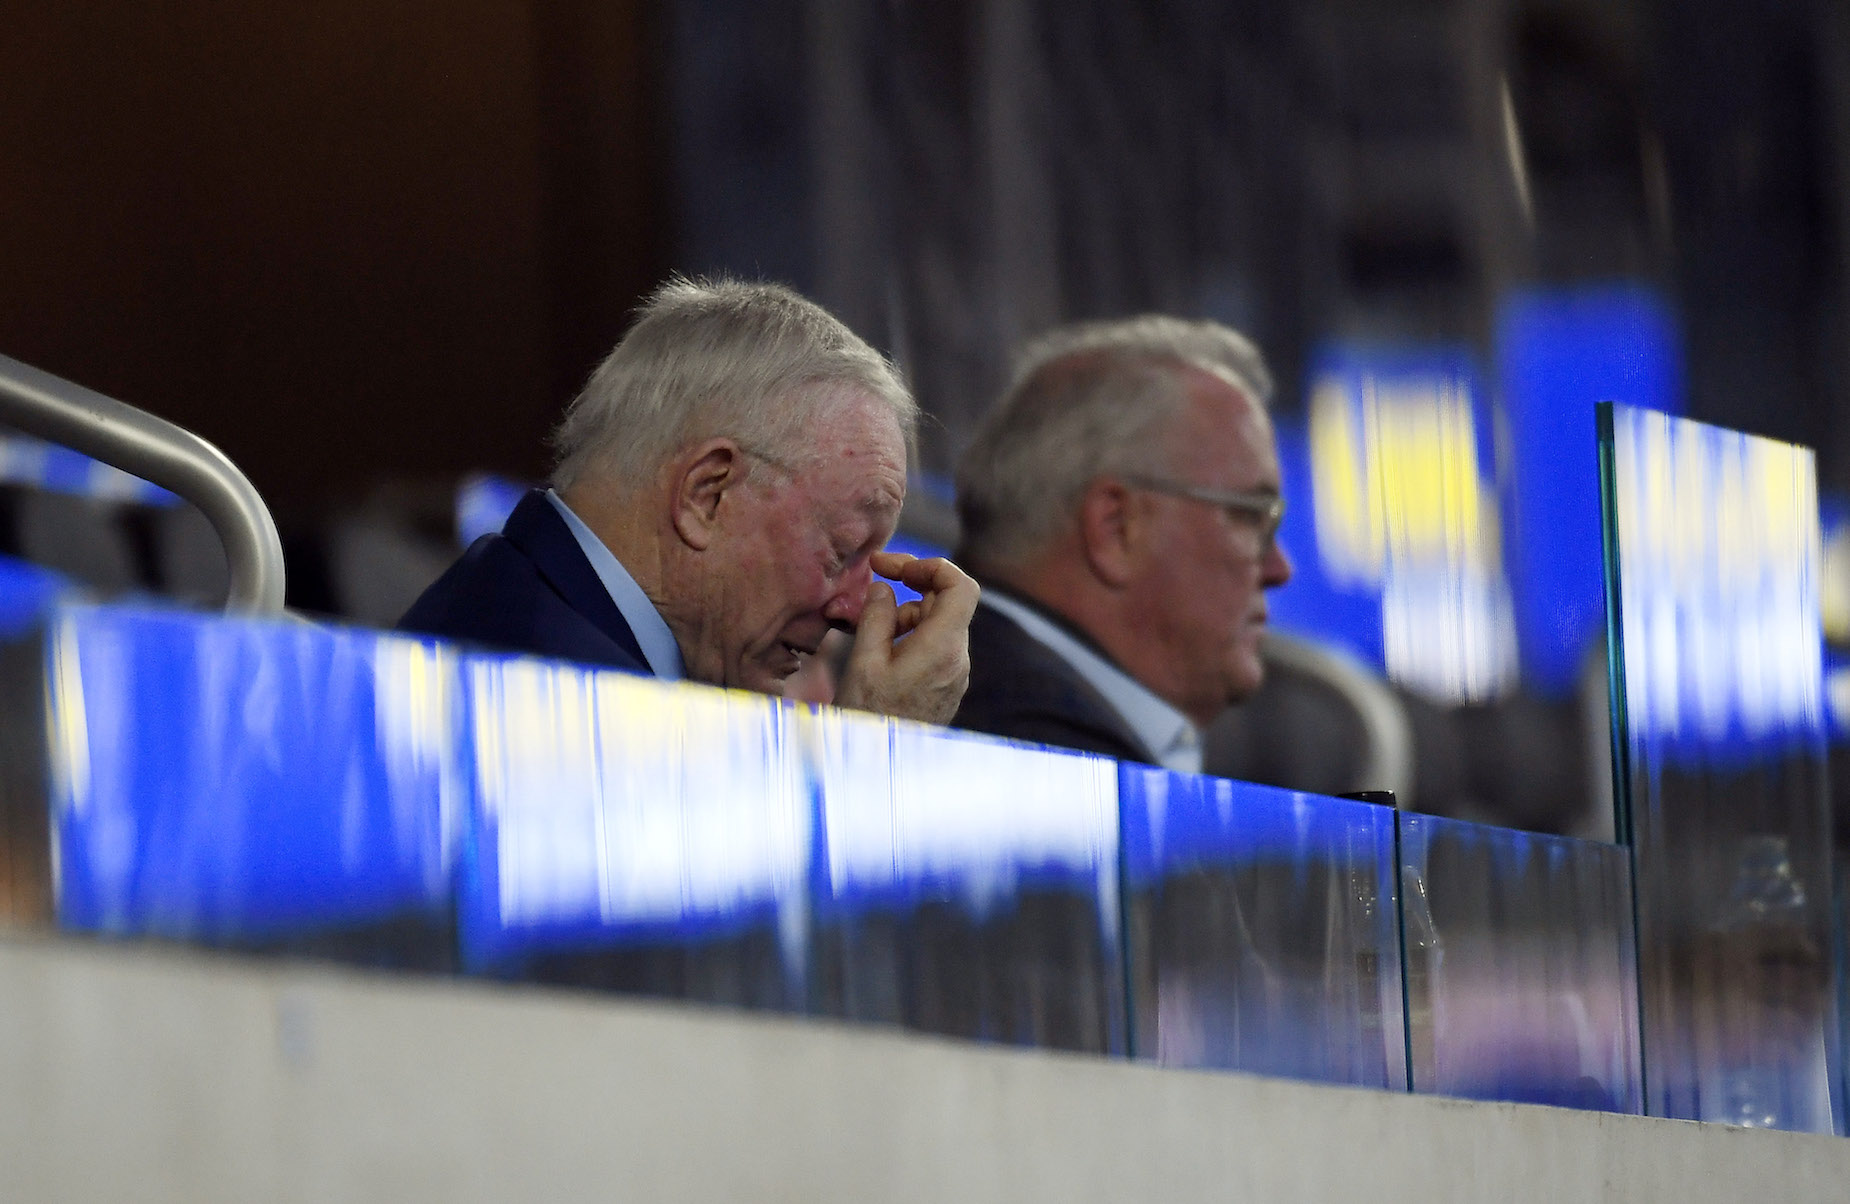 Jerry Jones might be dooming the Dallas Cowboys to another year of mediocrity with his inaction.